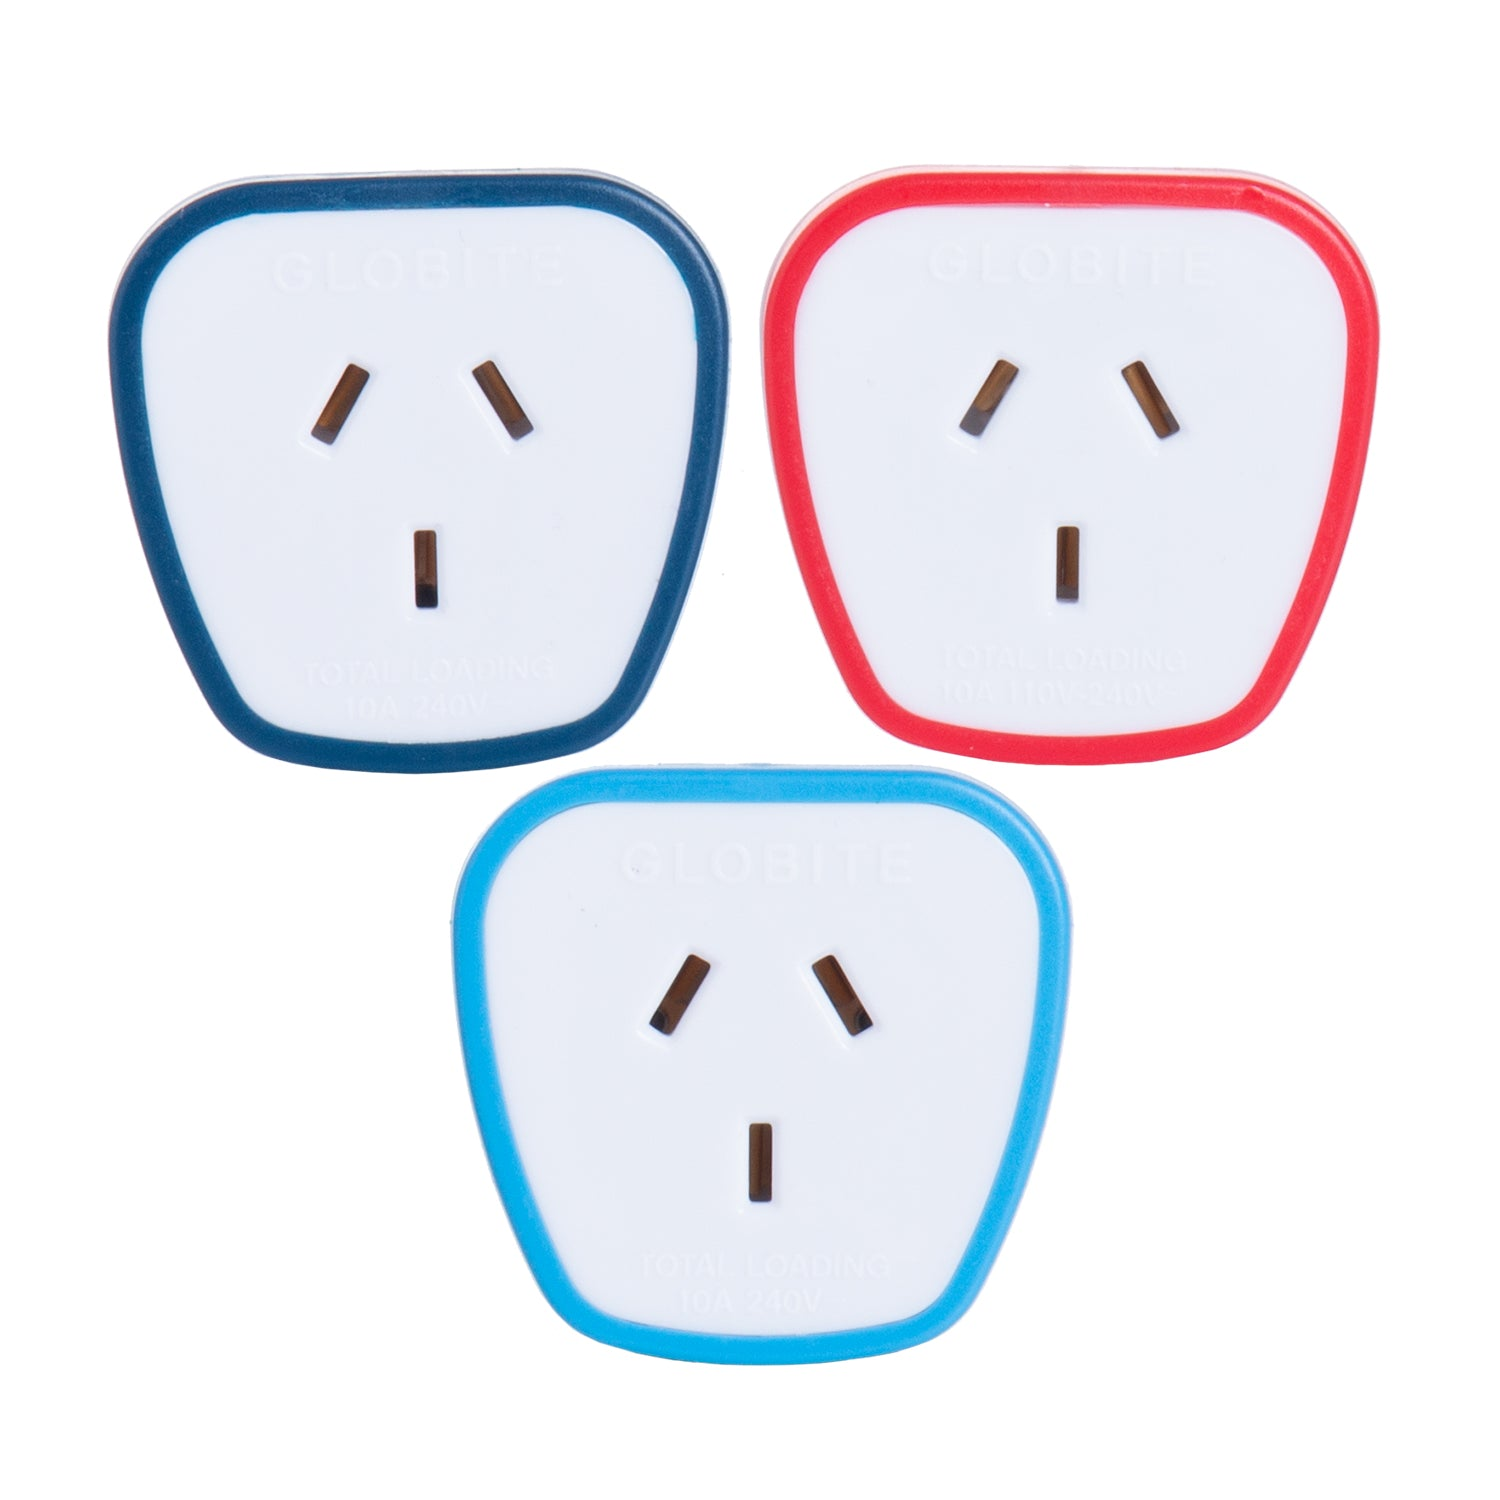 Adaptor Multi Pack USA/UK/EU - globite